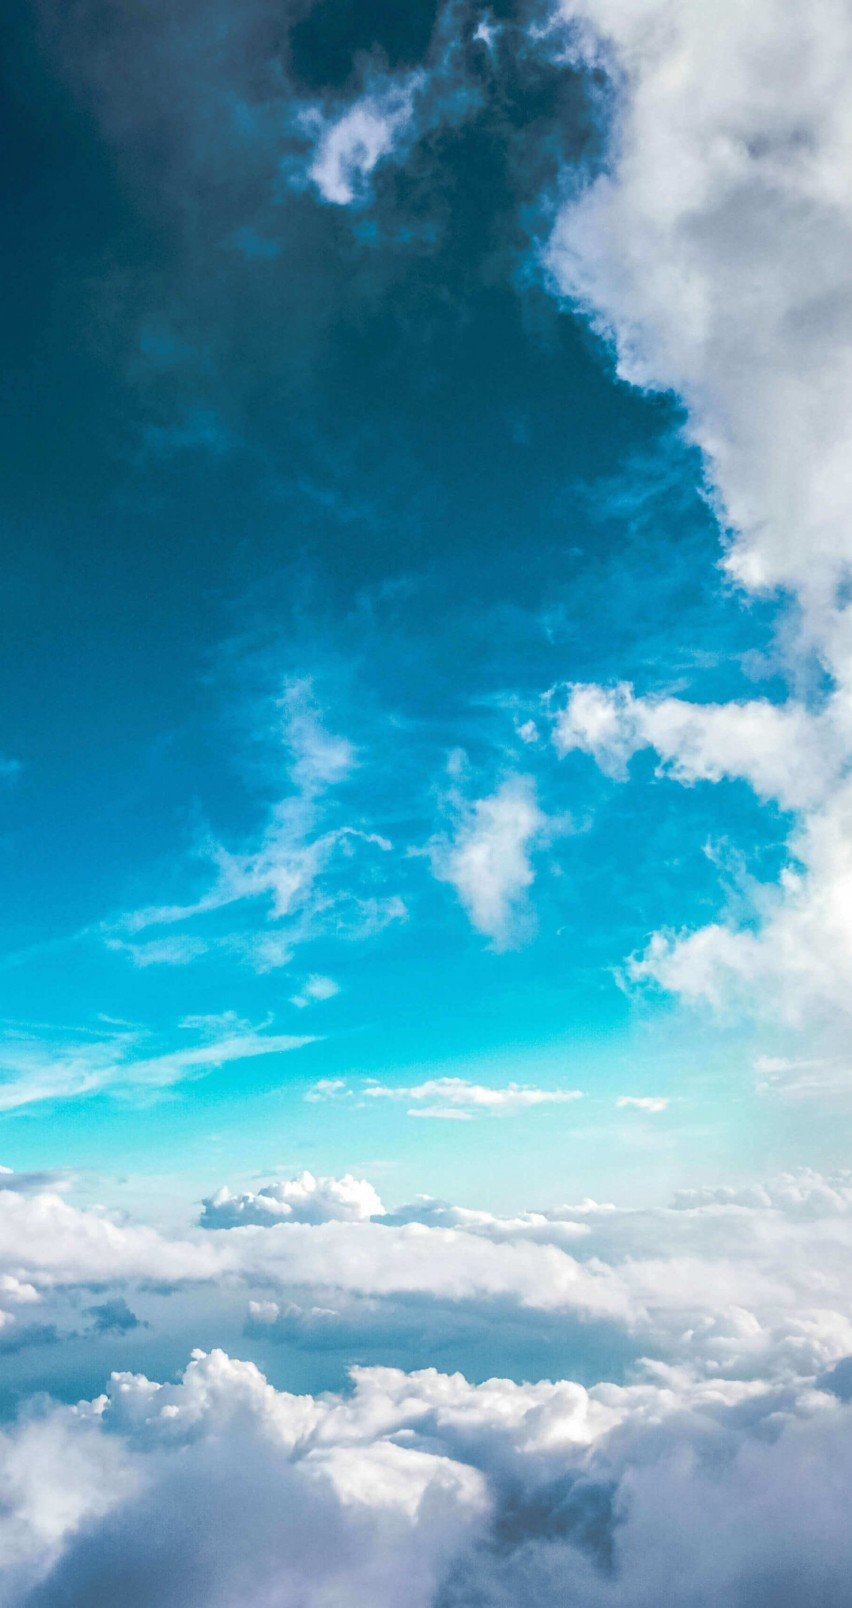 Cloudy Blue Sky Wallpaper for Apple iPhone 6 / 6s